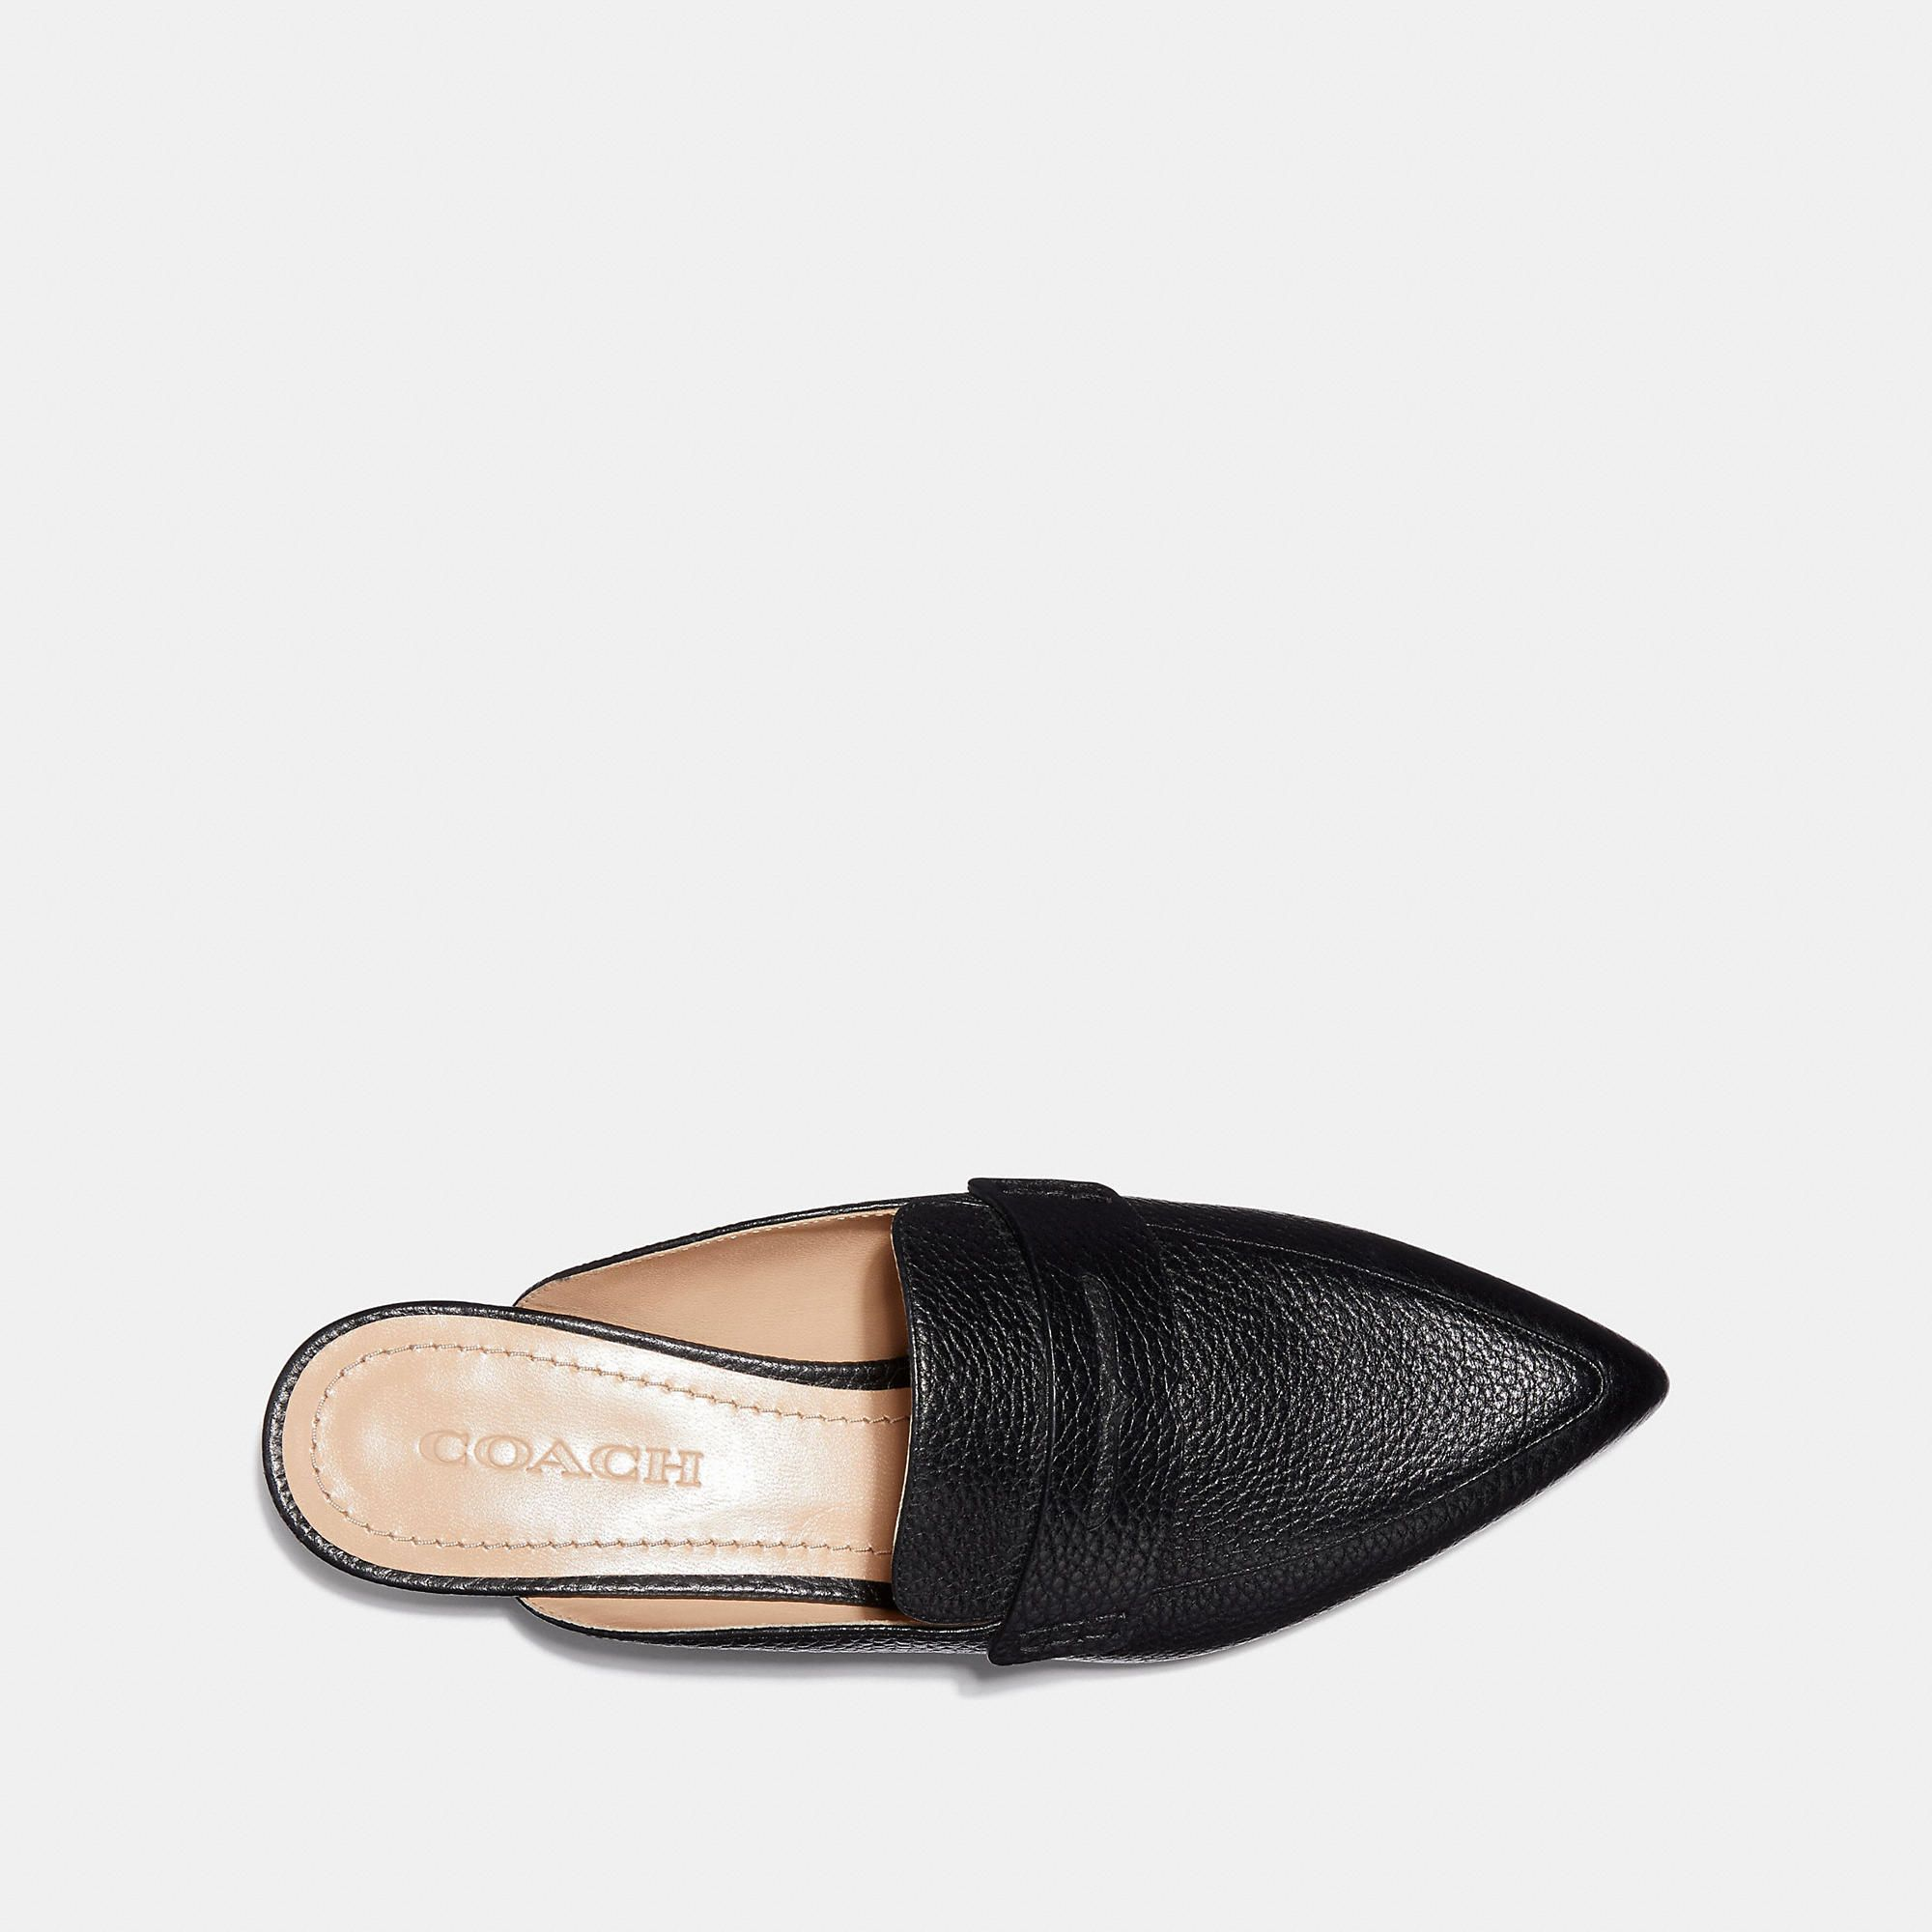 2cb250b60 COACH Nova Loafer Slide - Women's Size 9.5 in 2019 | Products ...